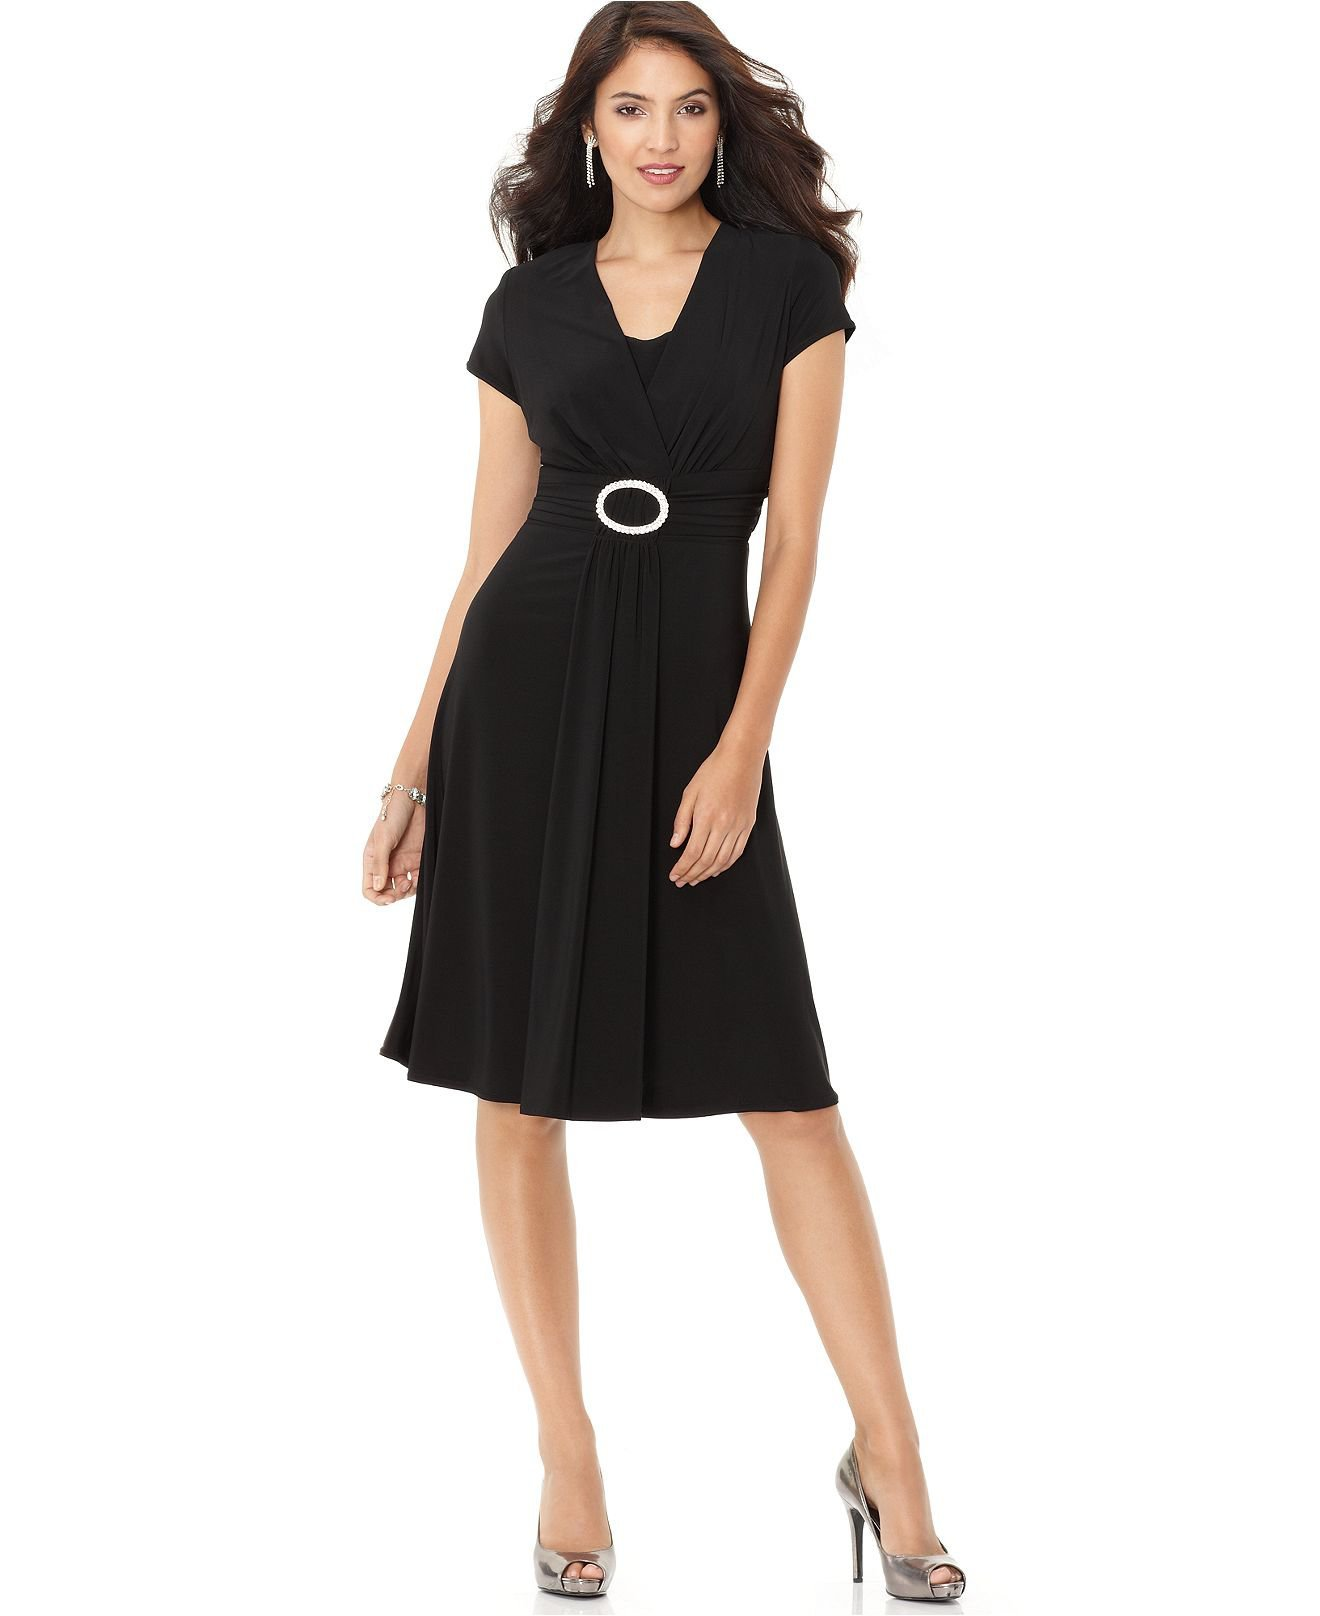 Original Click Here To Shop All Plus Size Clothing At Macys A Body Positivity Advocate,